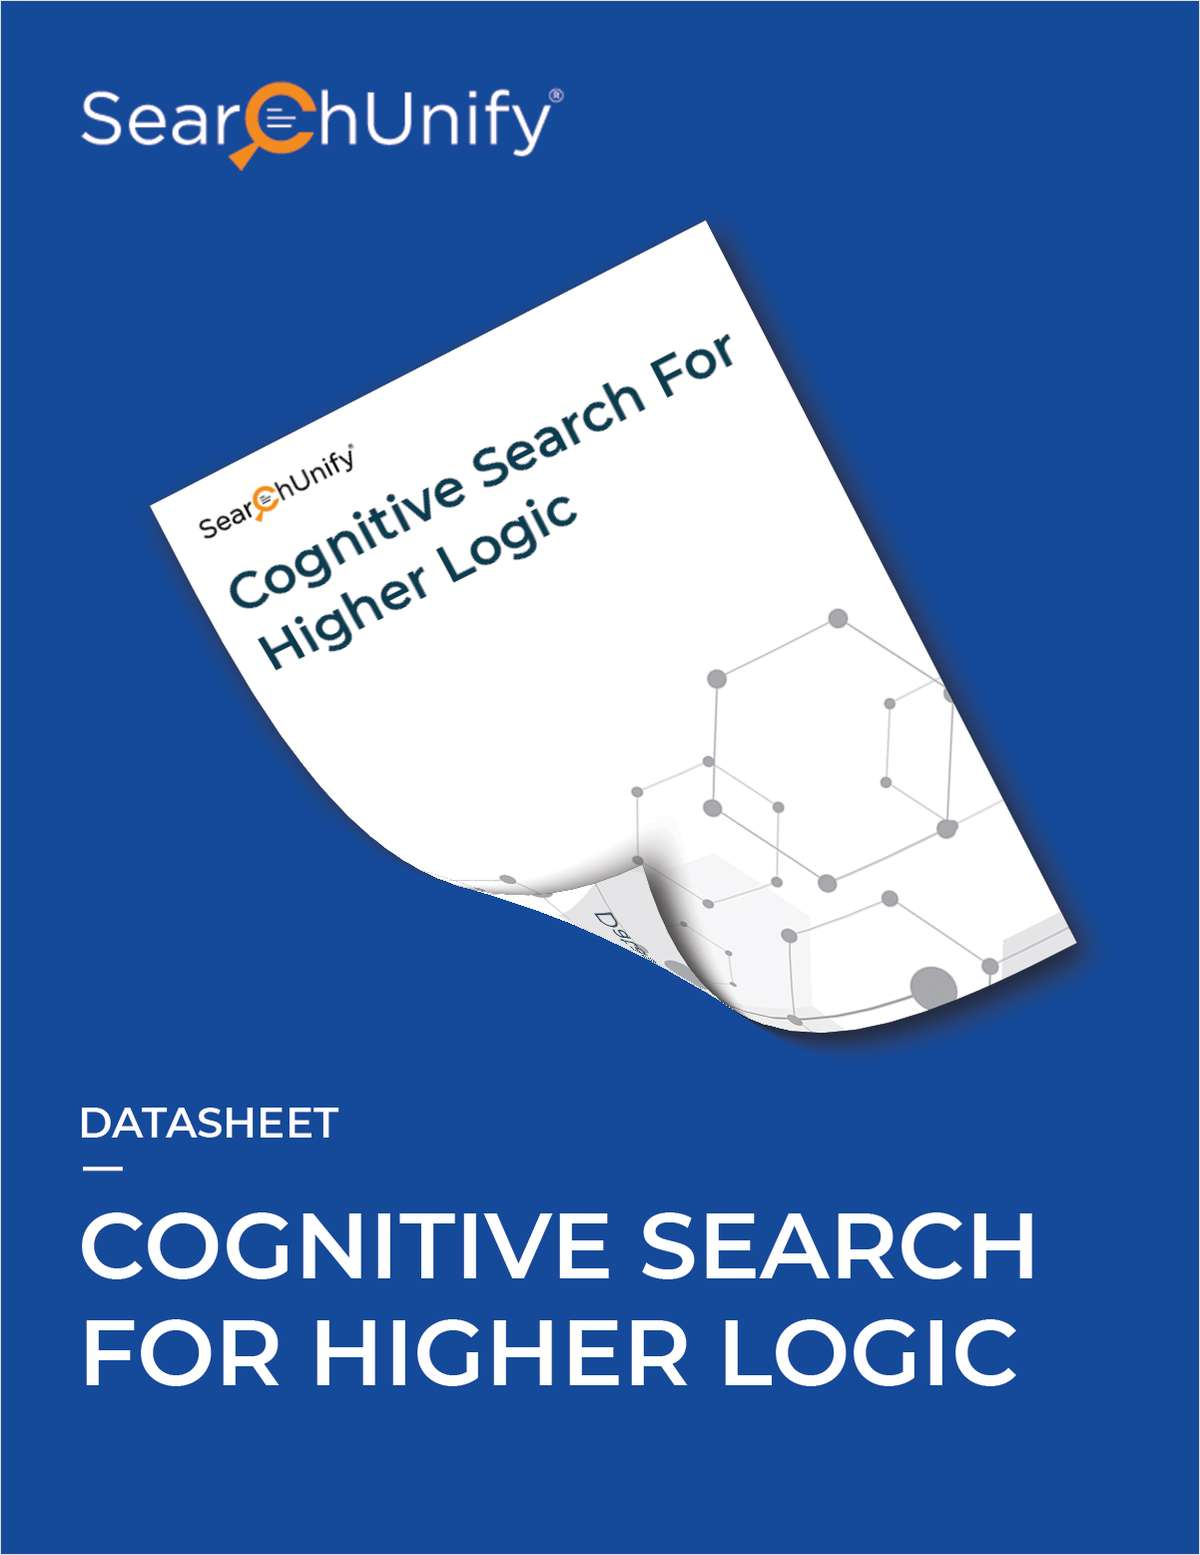 Cognitive Search for Higher Logic